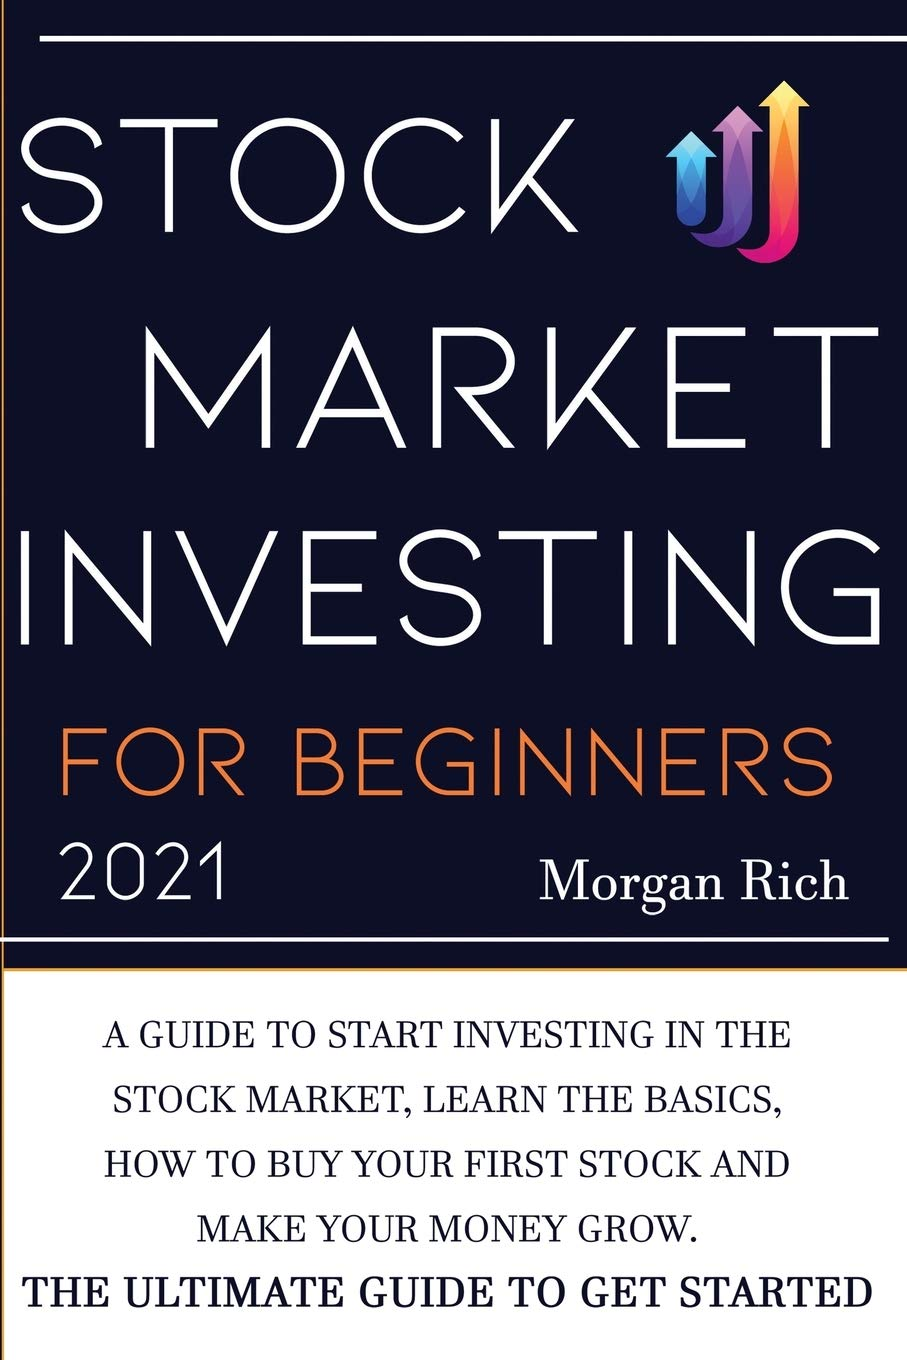 Stock Market Investing For Beginners 2021: A Guide to Start Investing in  the Stock Market, Learn the Basics, How to Buy your First Stock and Make  your Money Grow. The Ultimate Guide